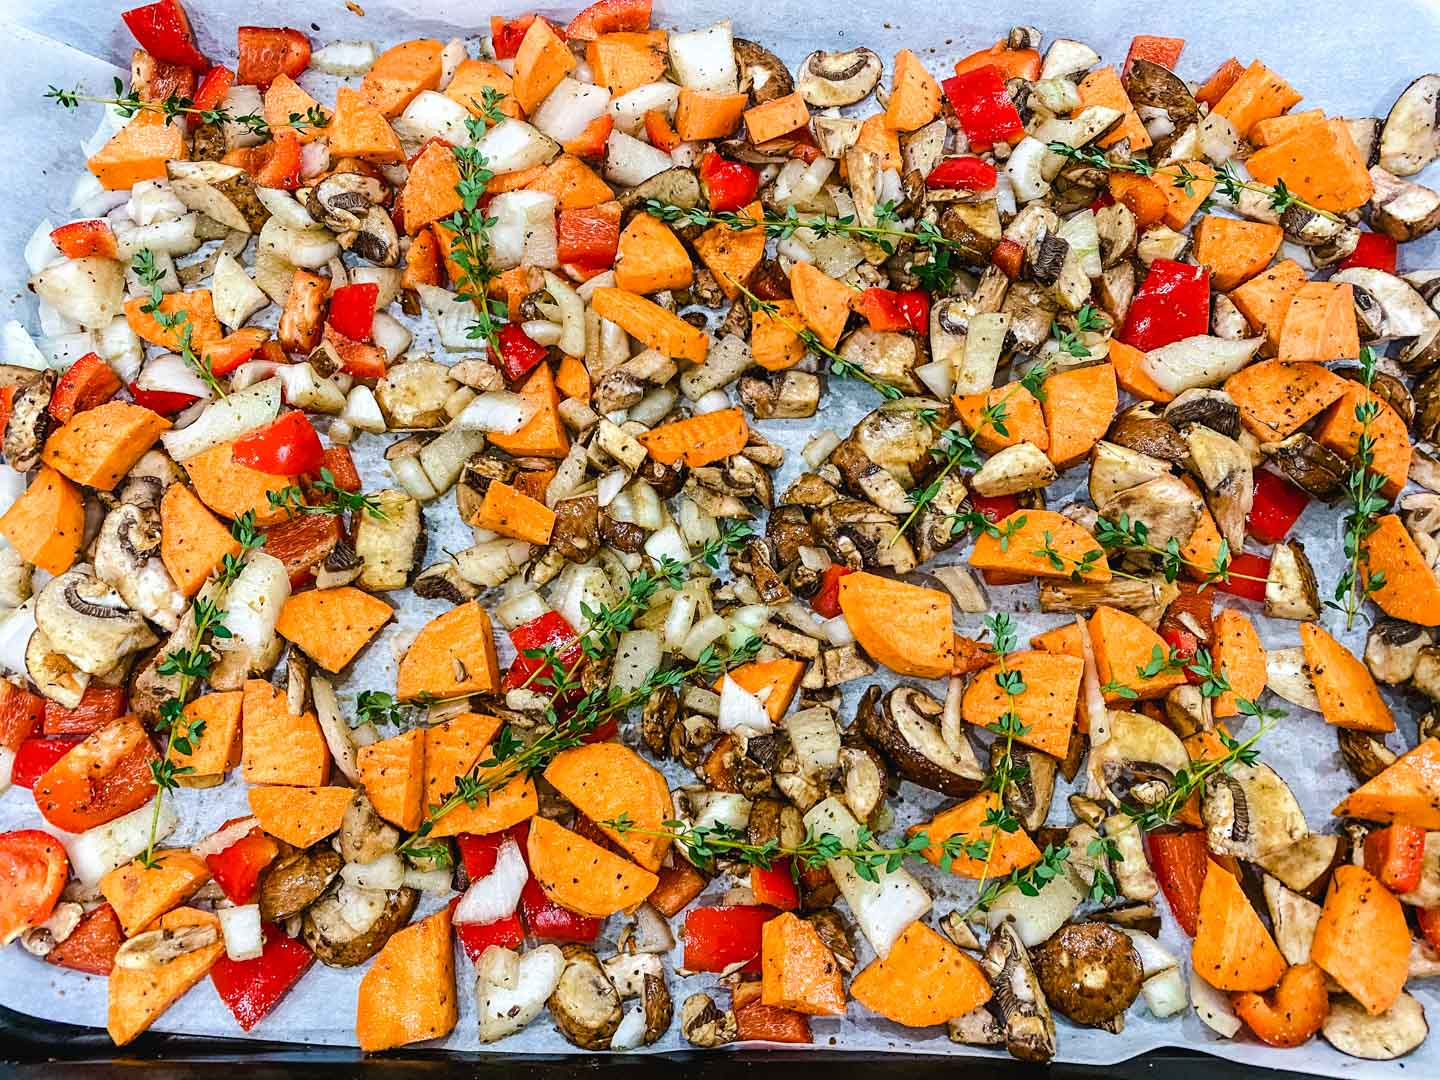 onions, red peppers, sweet potato, mushrooms, and fresh thyme on a baking sheet